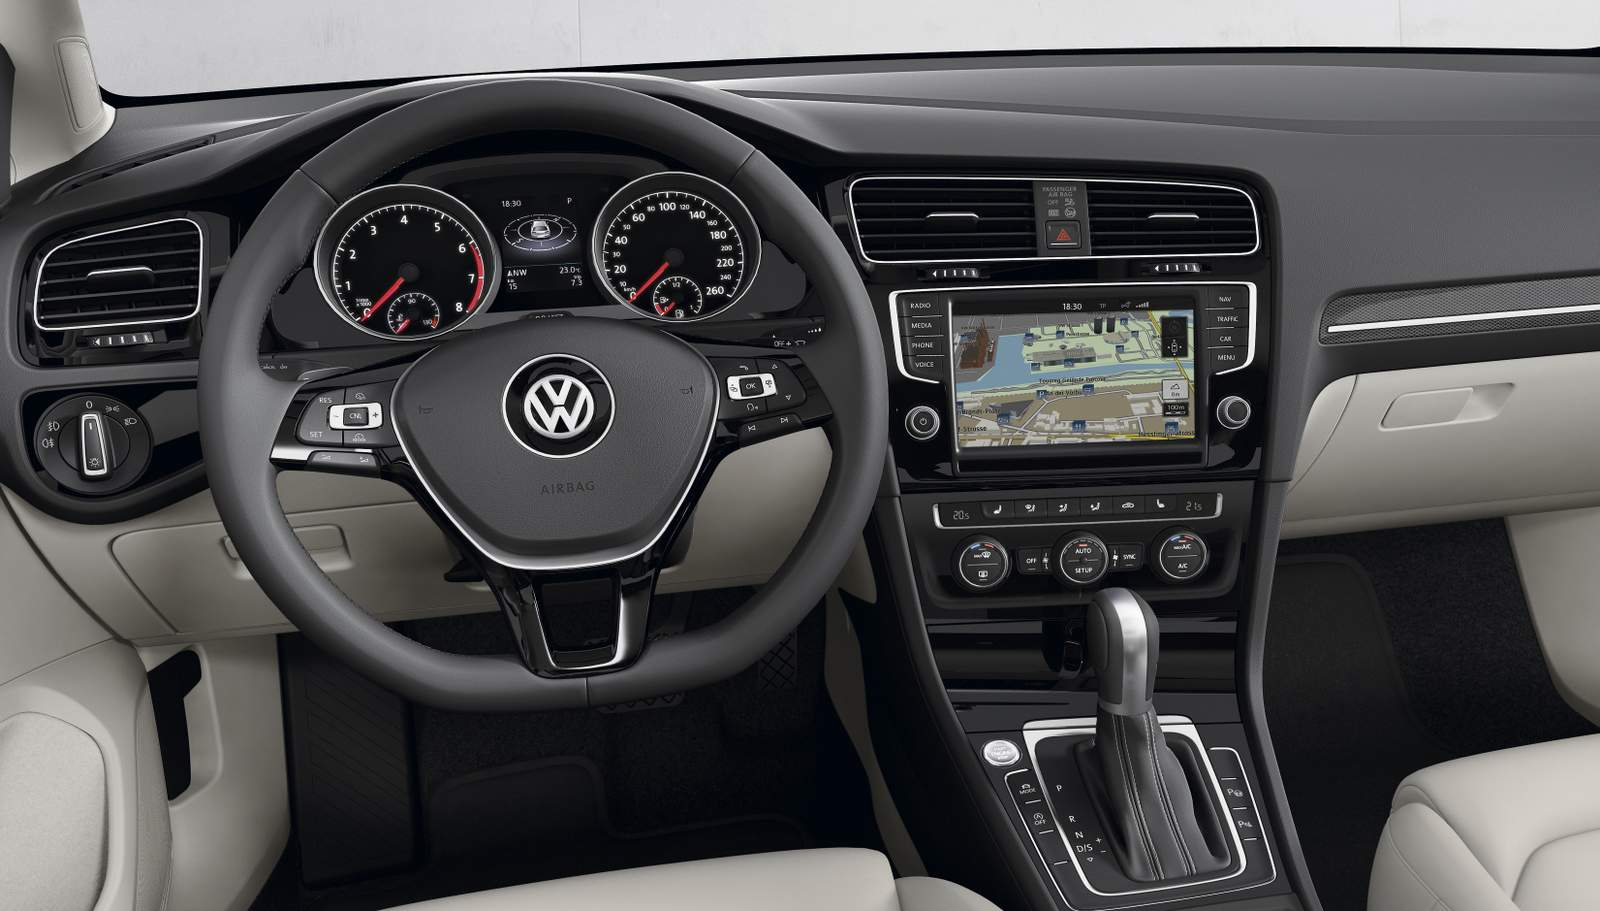 vw golf variant 2017 flex autom tica fotos especifica es motor v cio. Black Bedroom Furniture Sets. Home Design Ideas